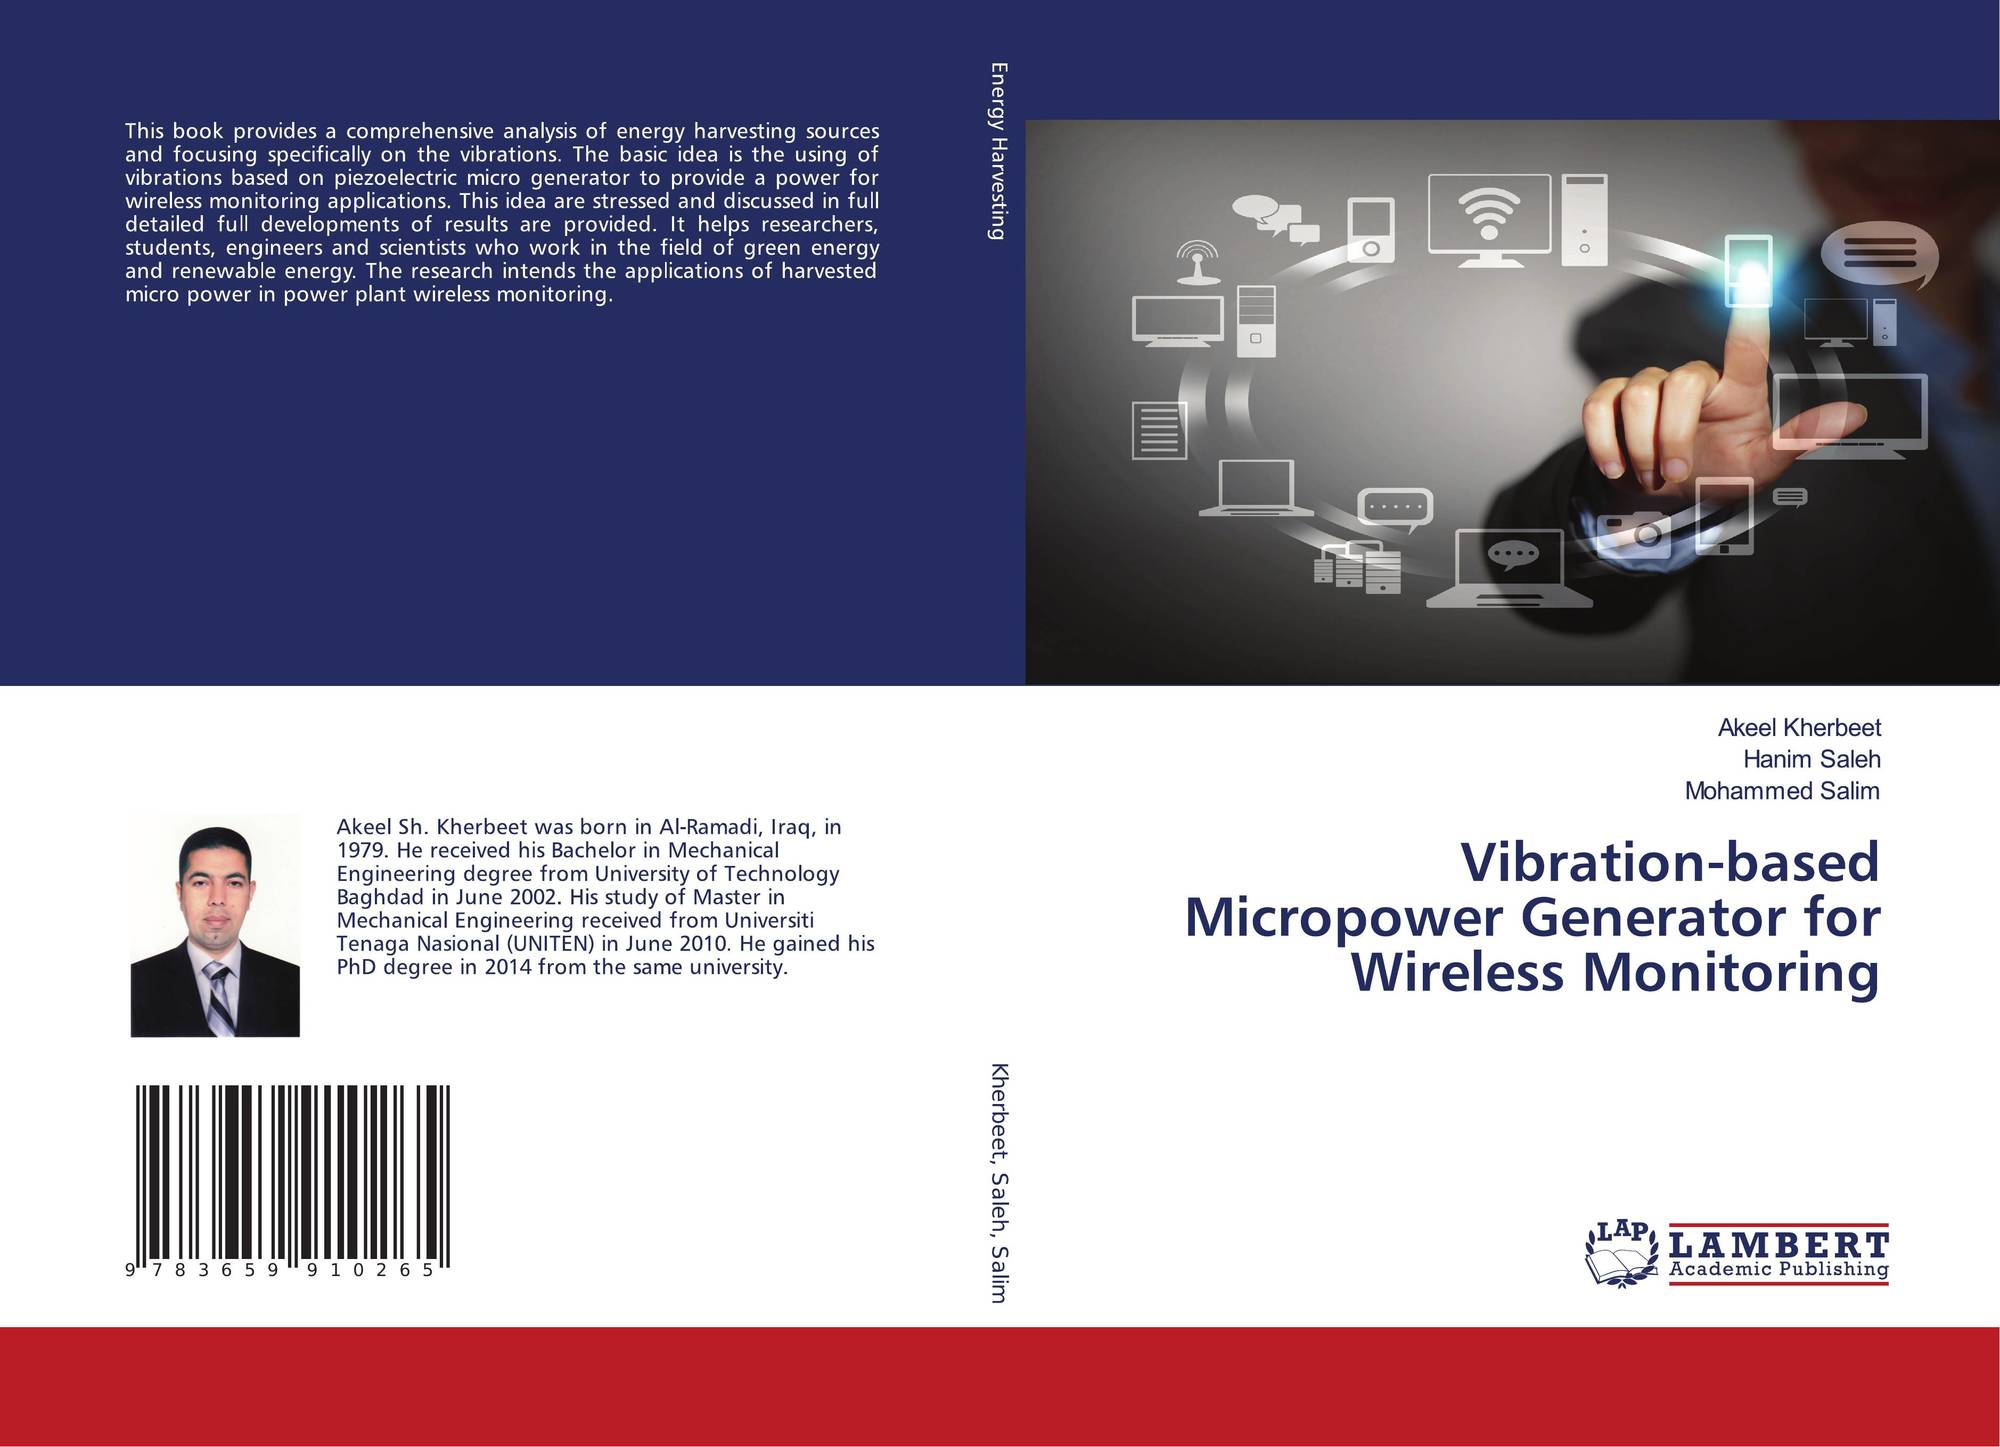 Vibration-based Micropower Generator for Wireless Monitoring